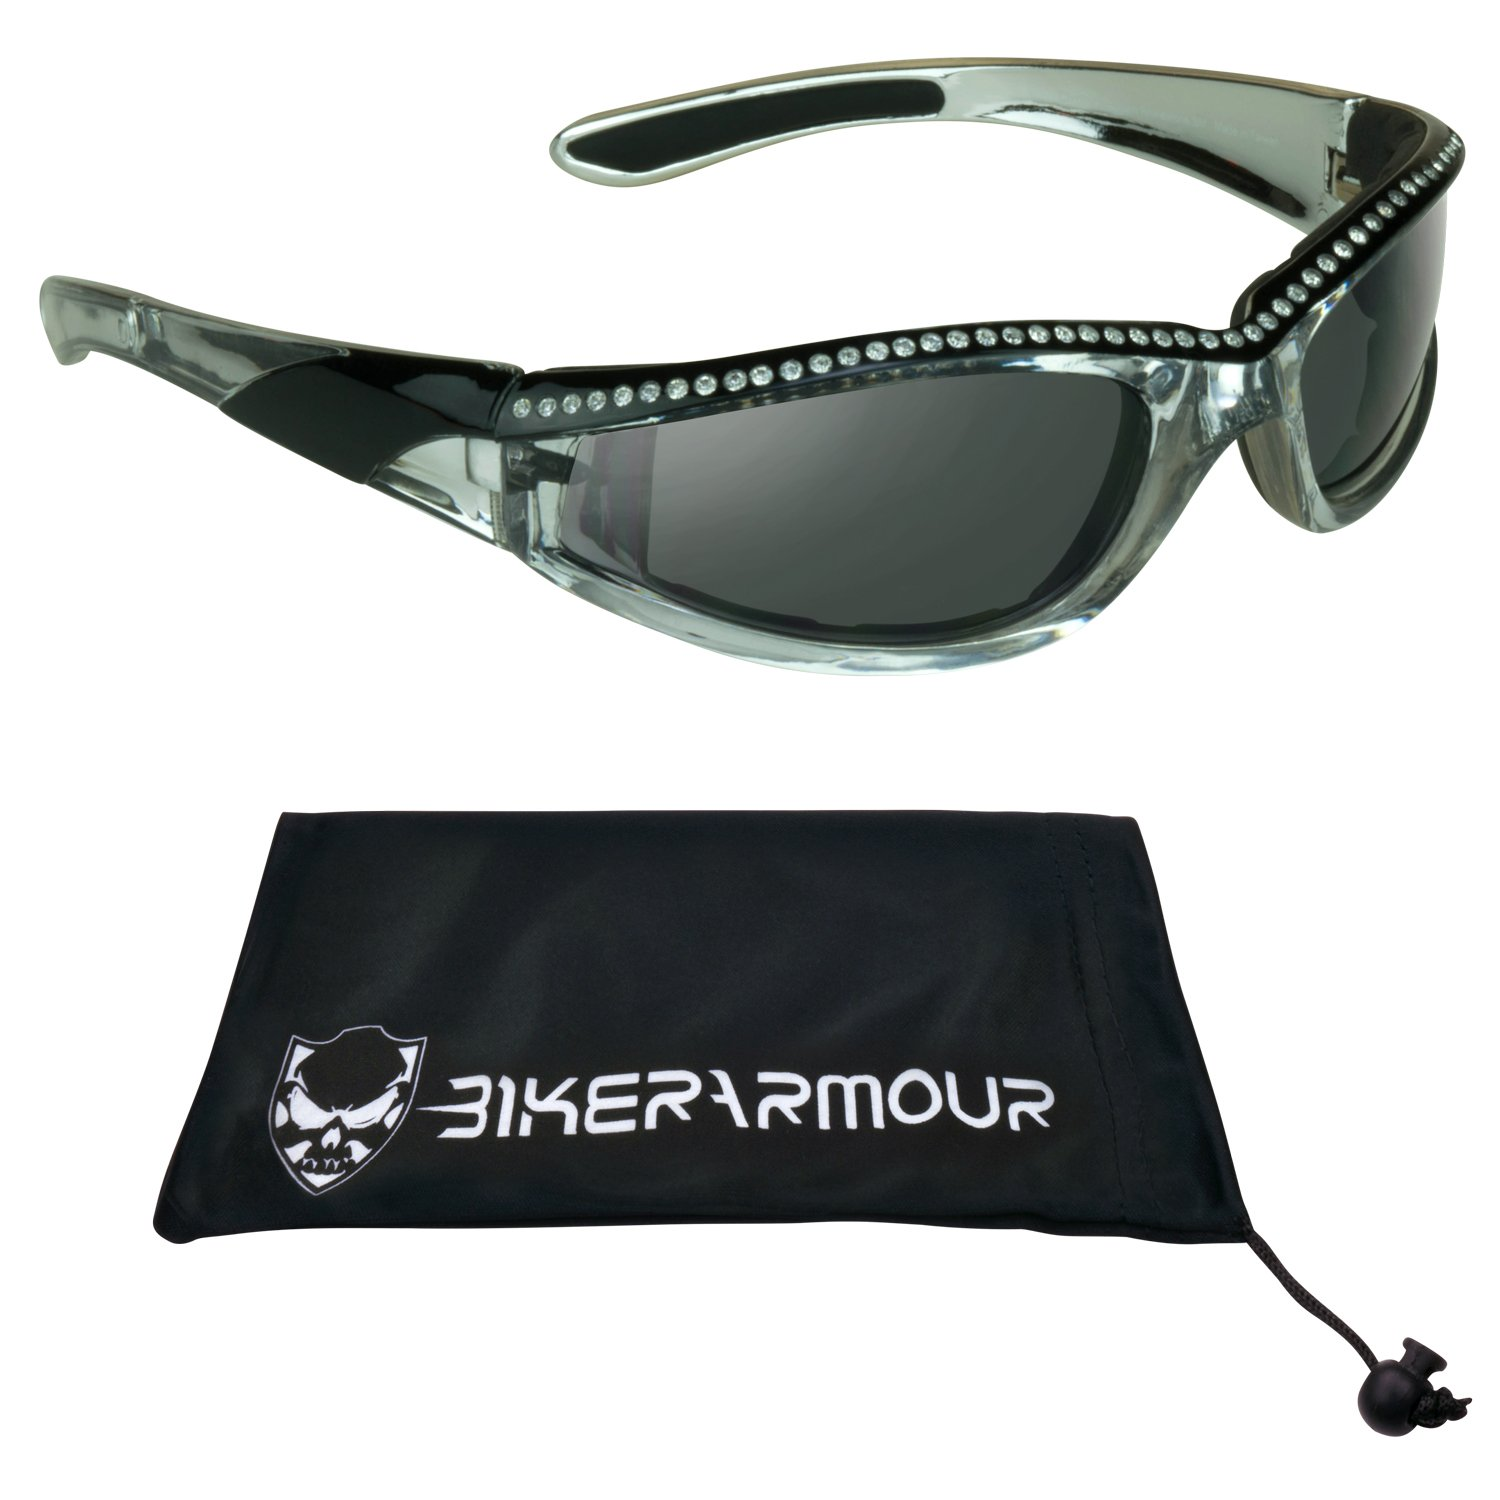 Chrome and Black Frame Anti Glare Mirrored Motorcycle Sunglasses with Rhinestones Foam Padded for Women